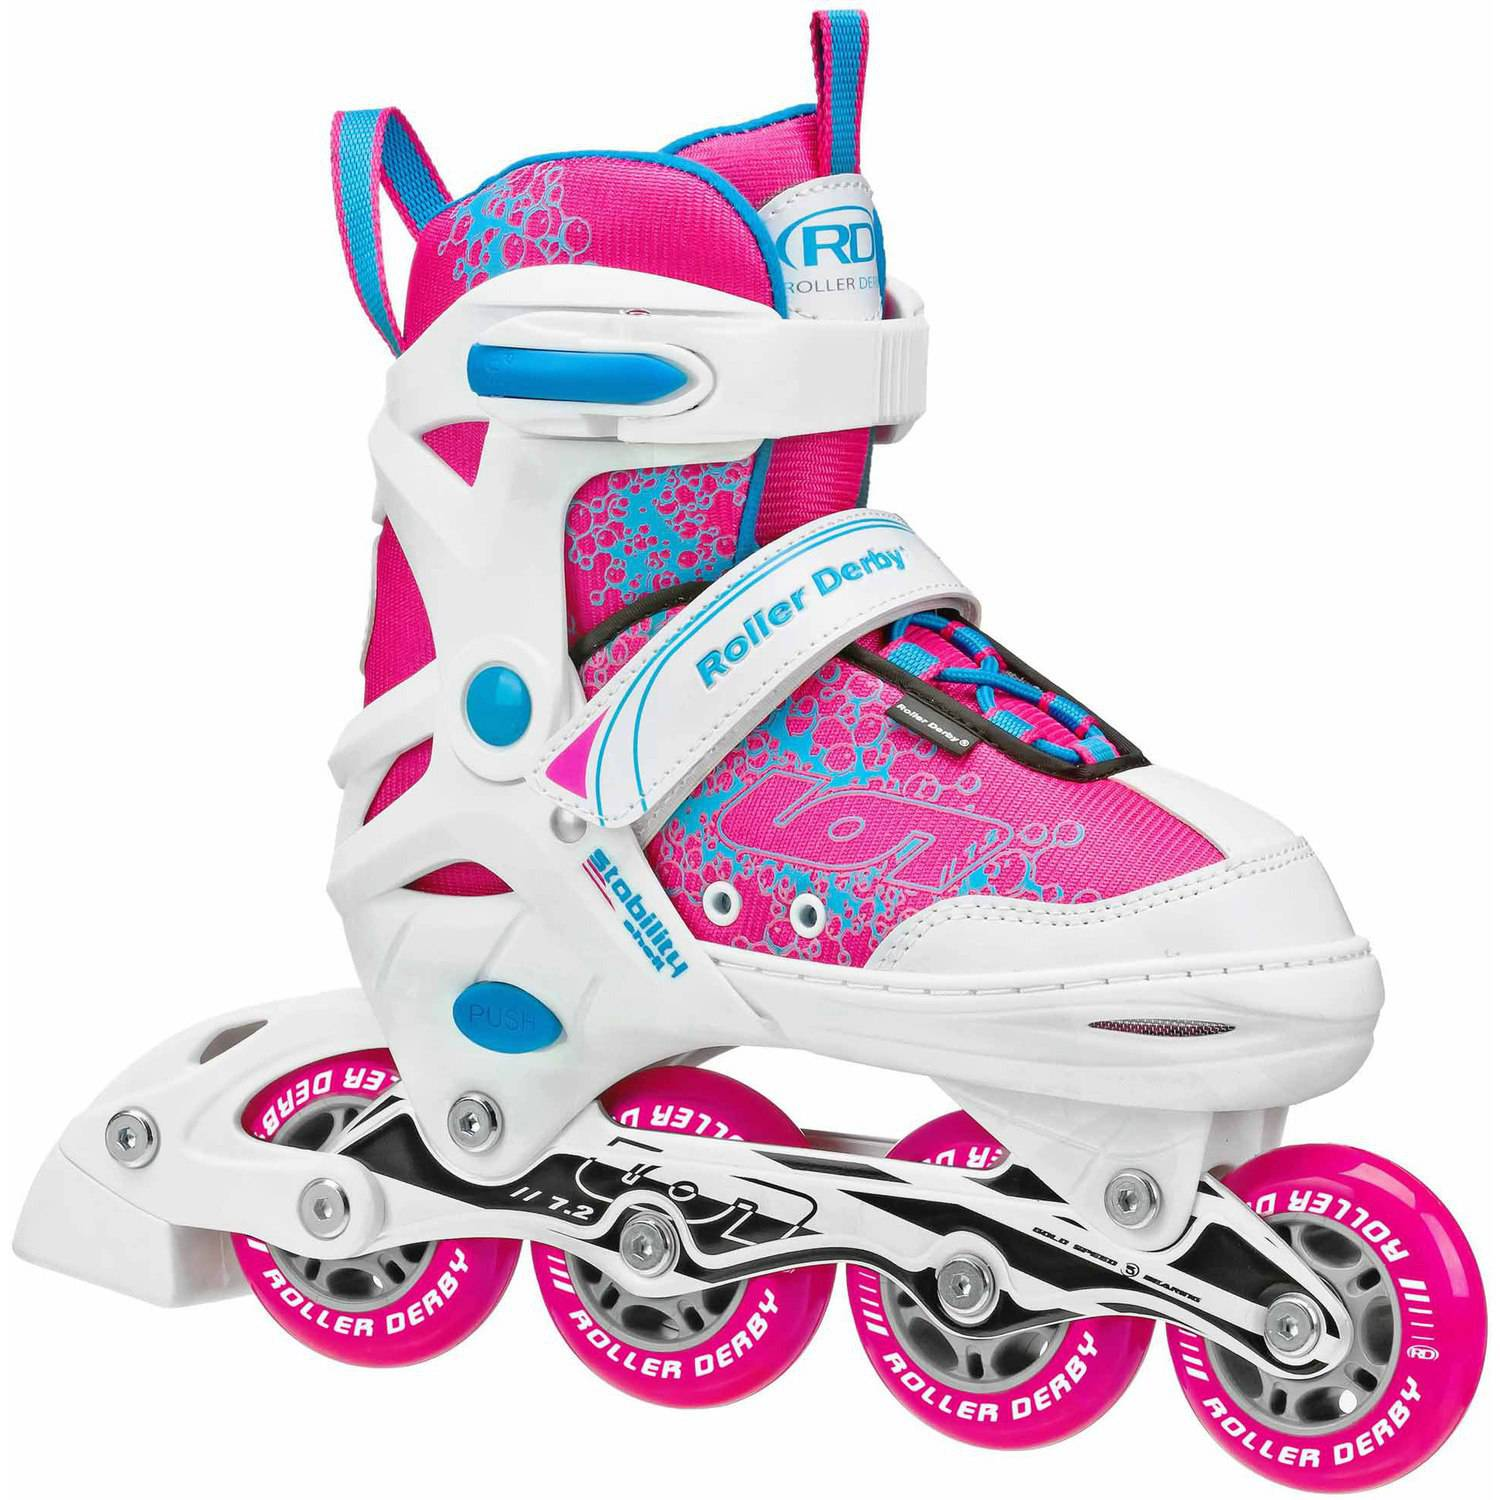 Ion 7.2 Girls' Adjustable Inline Skates, Pink/Baby Blue